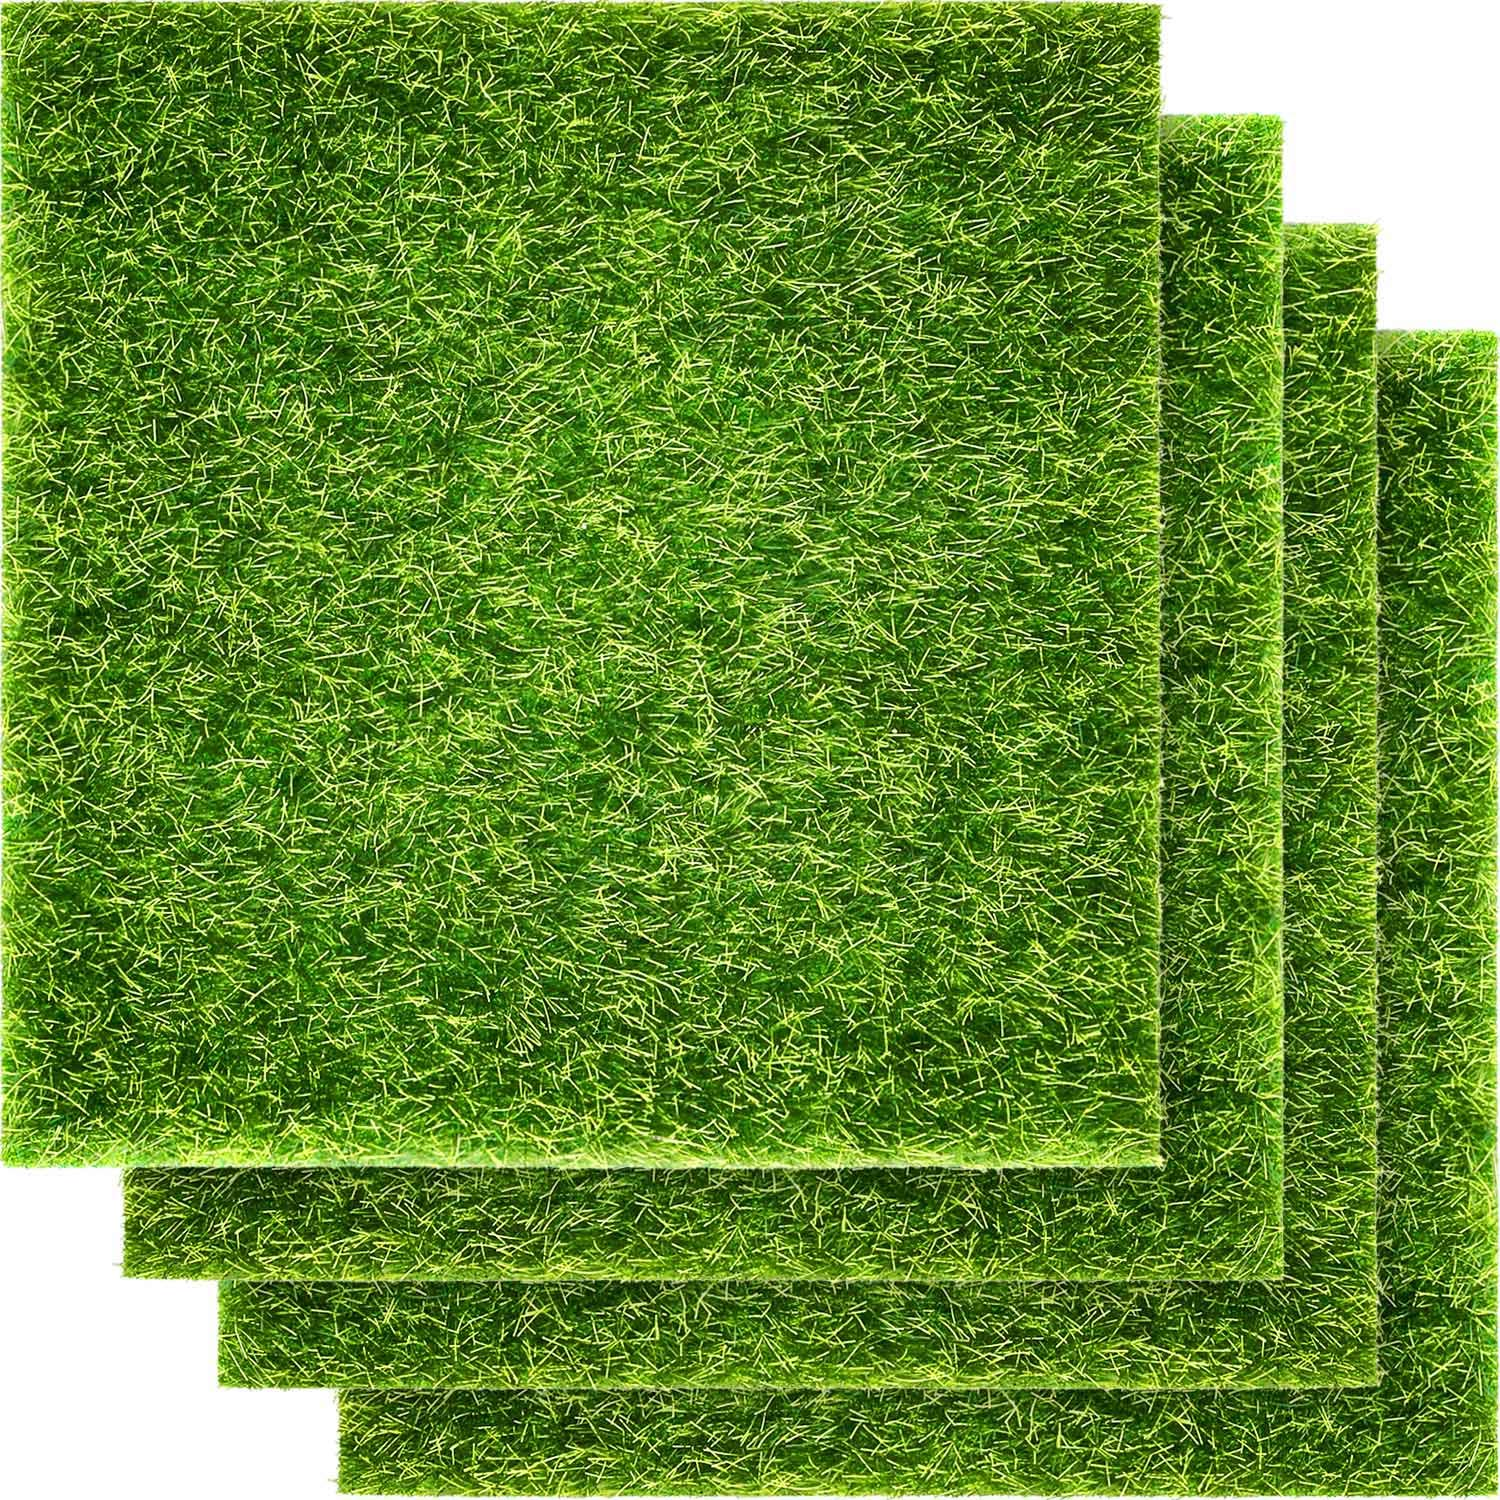 Pangda Artificial Garden Grass, Life-Like Fairy Artificial Grass Lawn 6 x 6 Inches Miniature Ornament Garden Dollhouse DIY Grass(4 Packs)